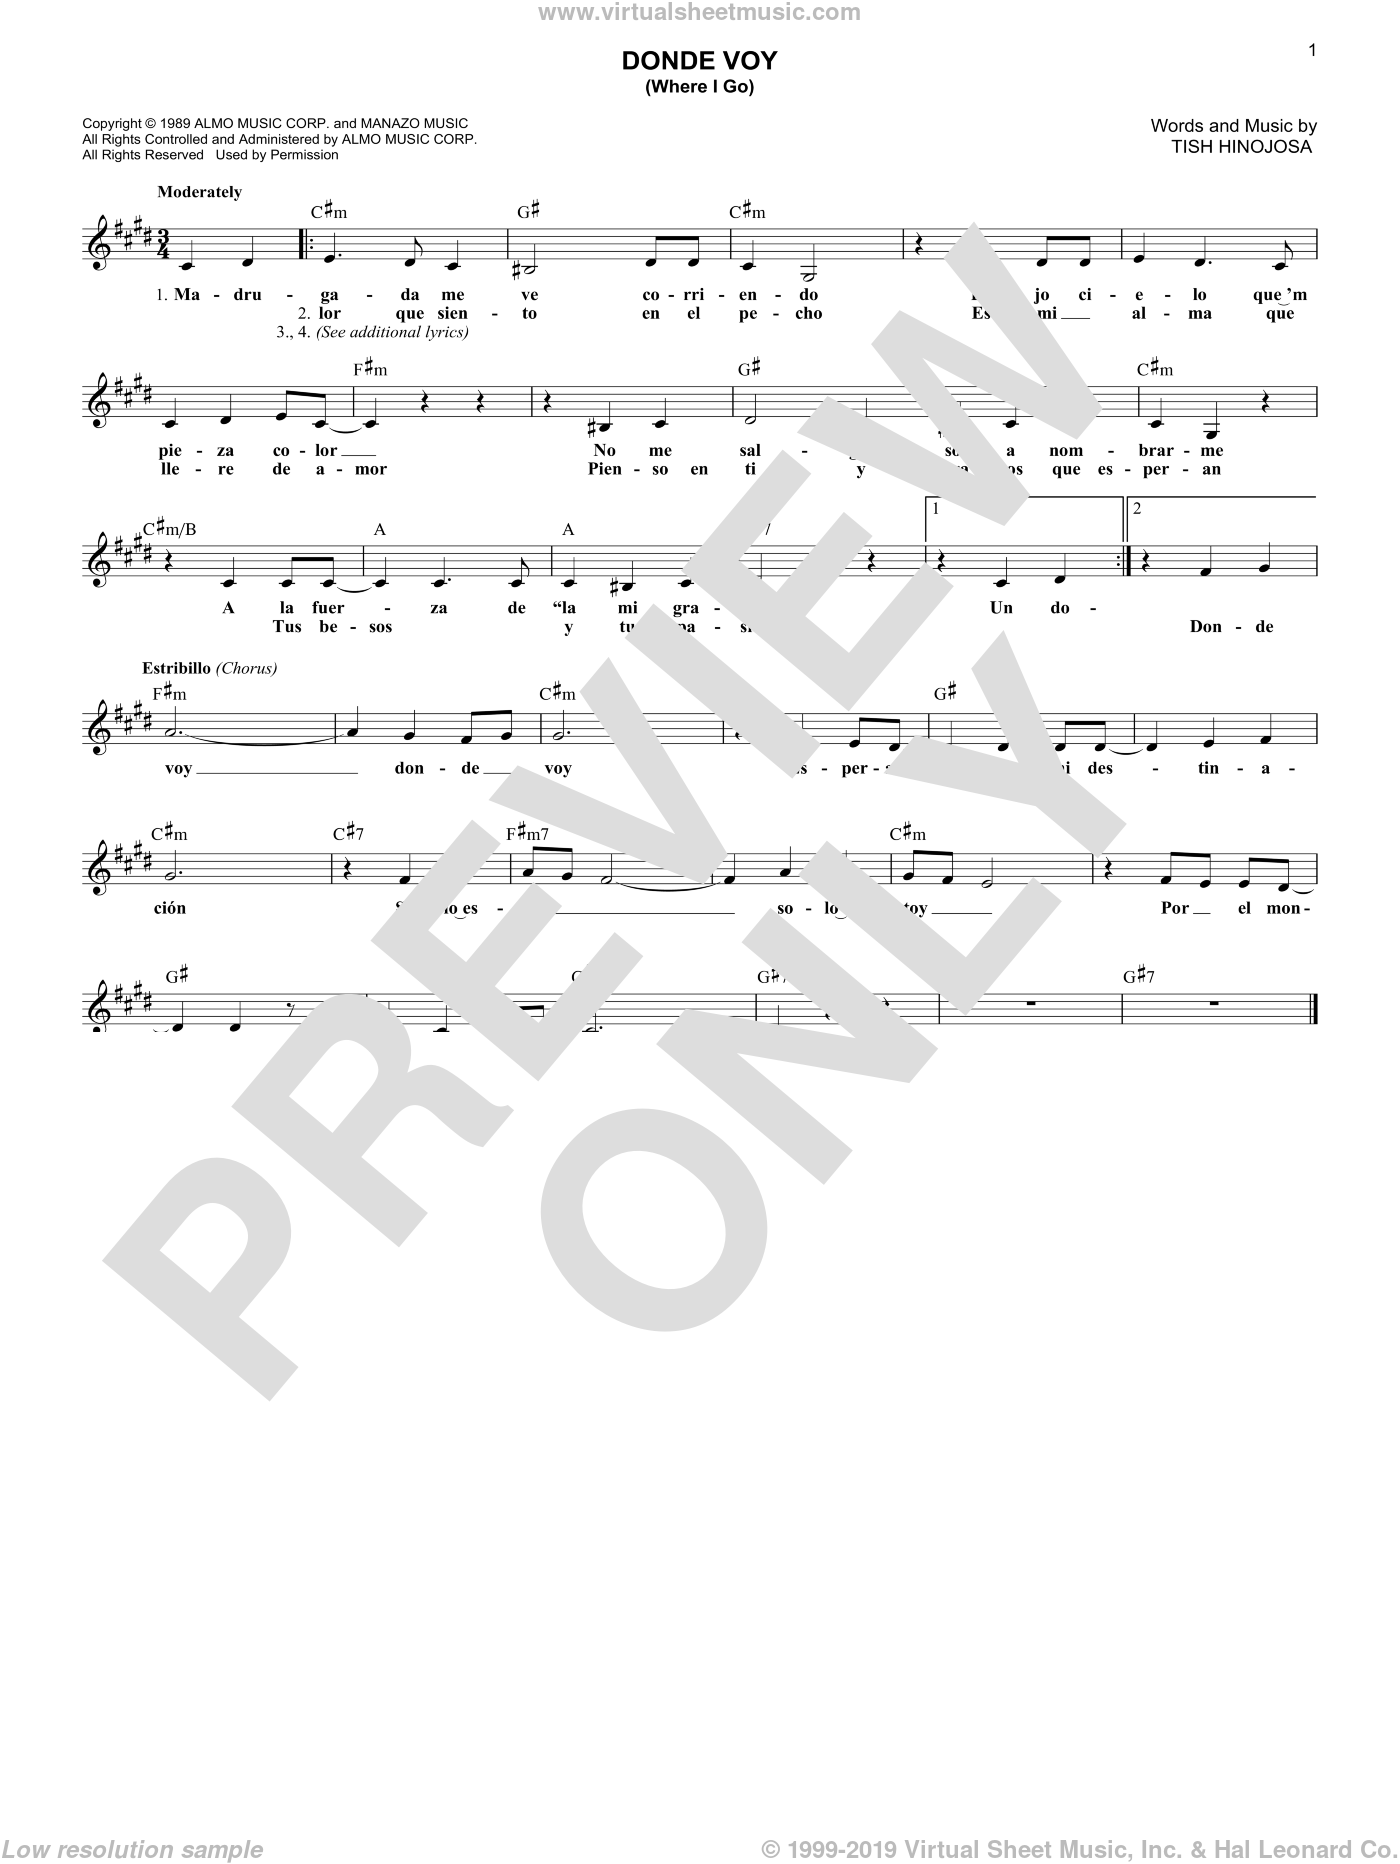 Donde Voy (Where I Go) sheet music for voice and other instruments (fake book) by Tish Hinojosa, intermediate skill level